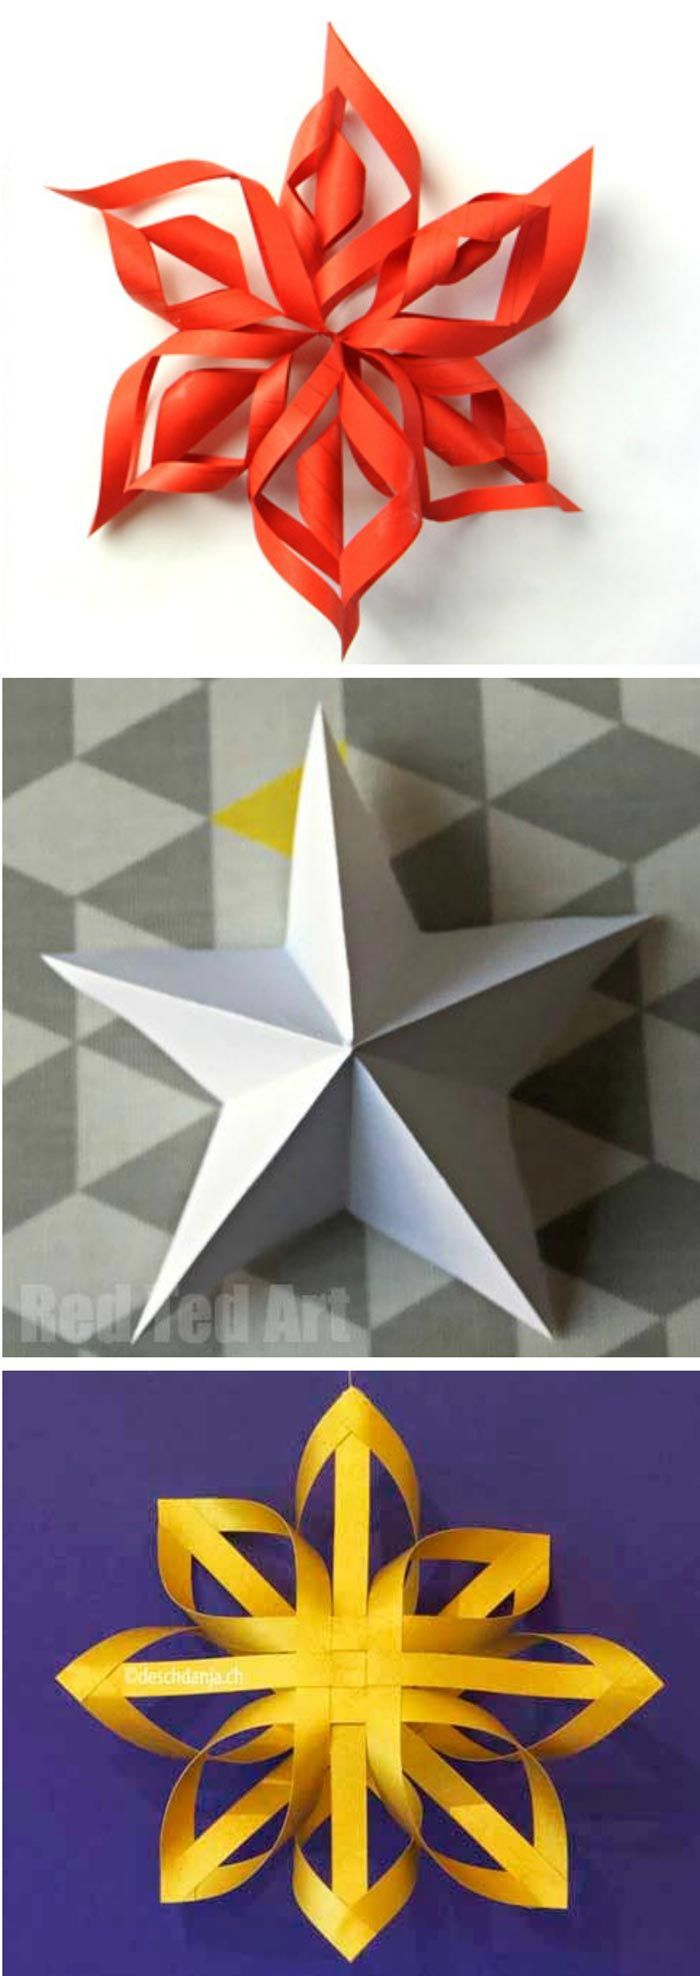 3 ways to make 3D Paper Stars